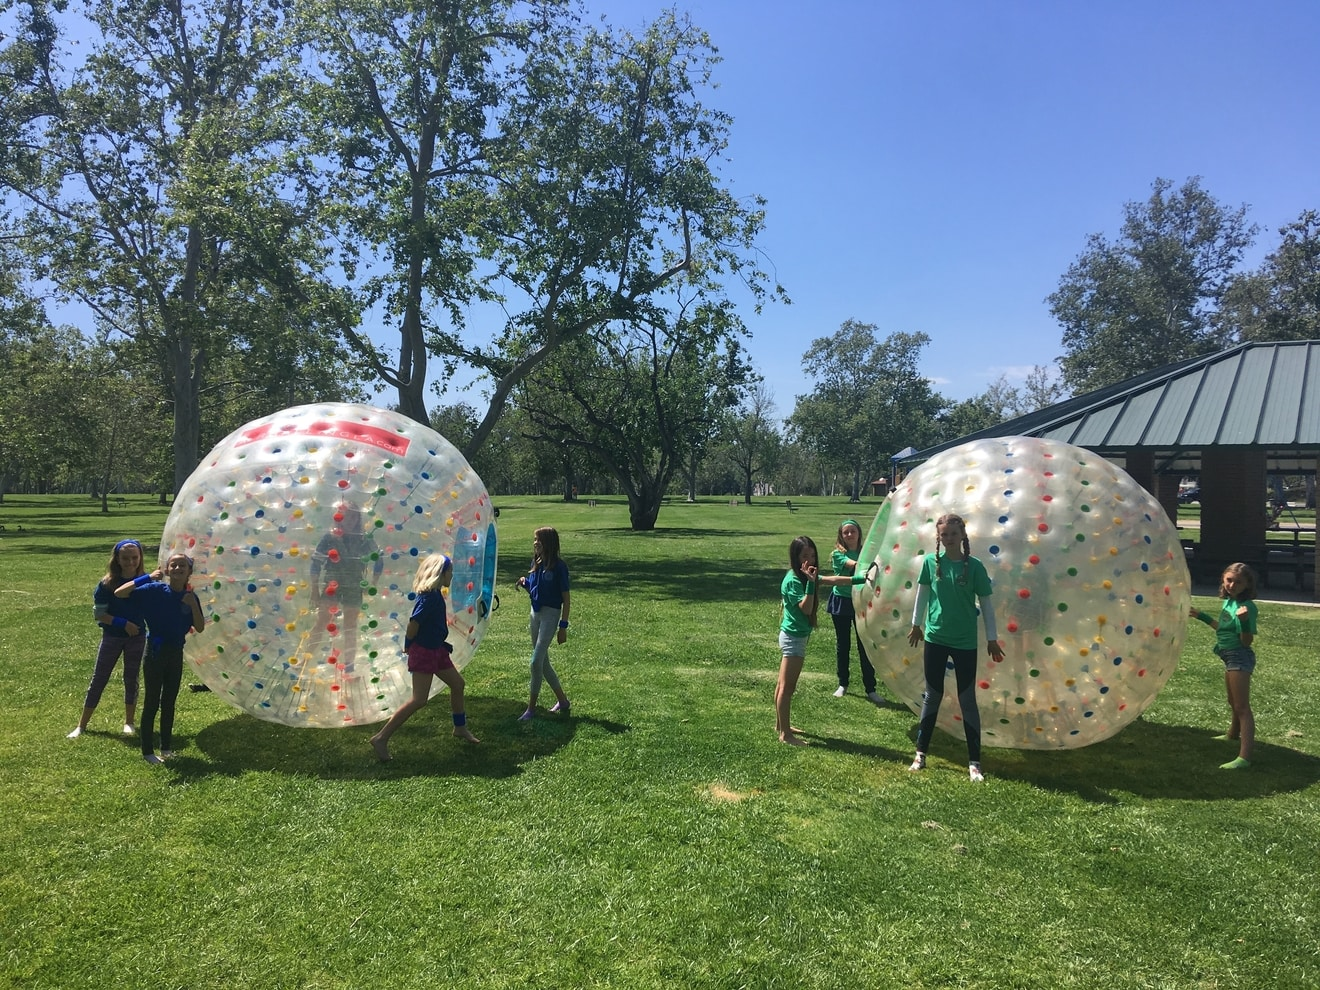 Group Photo with Inflatable Hamster Balls